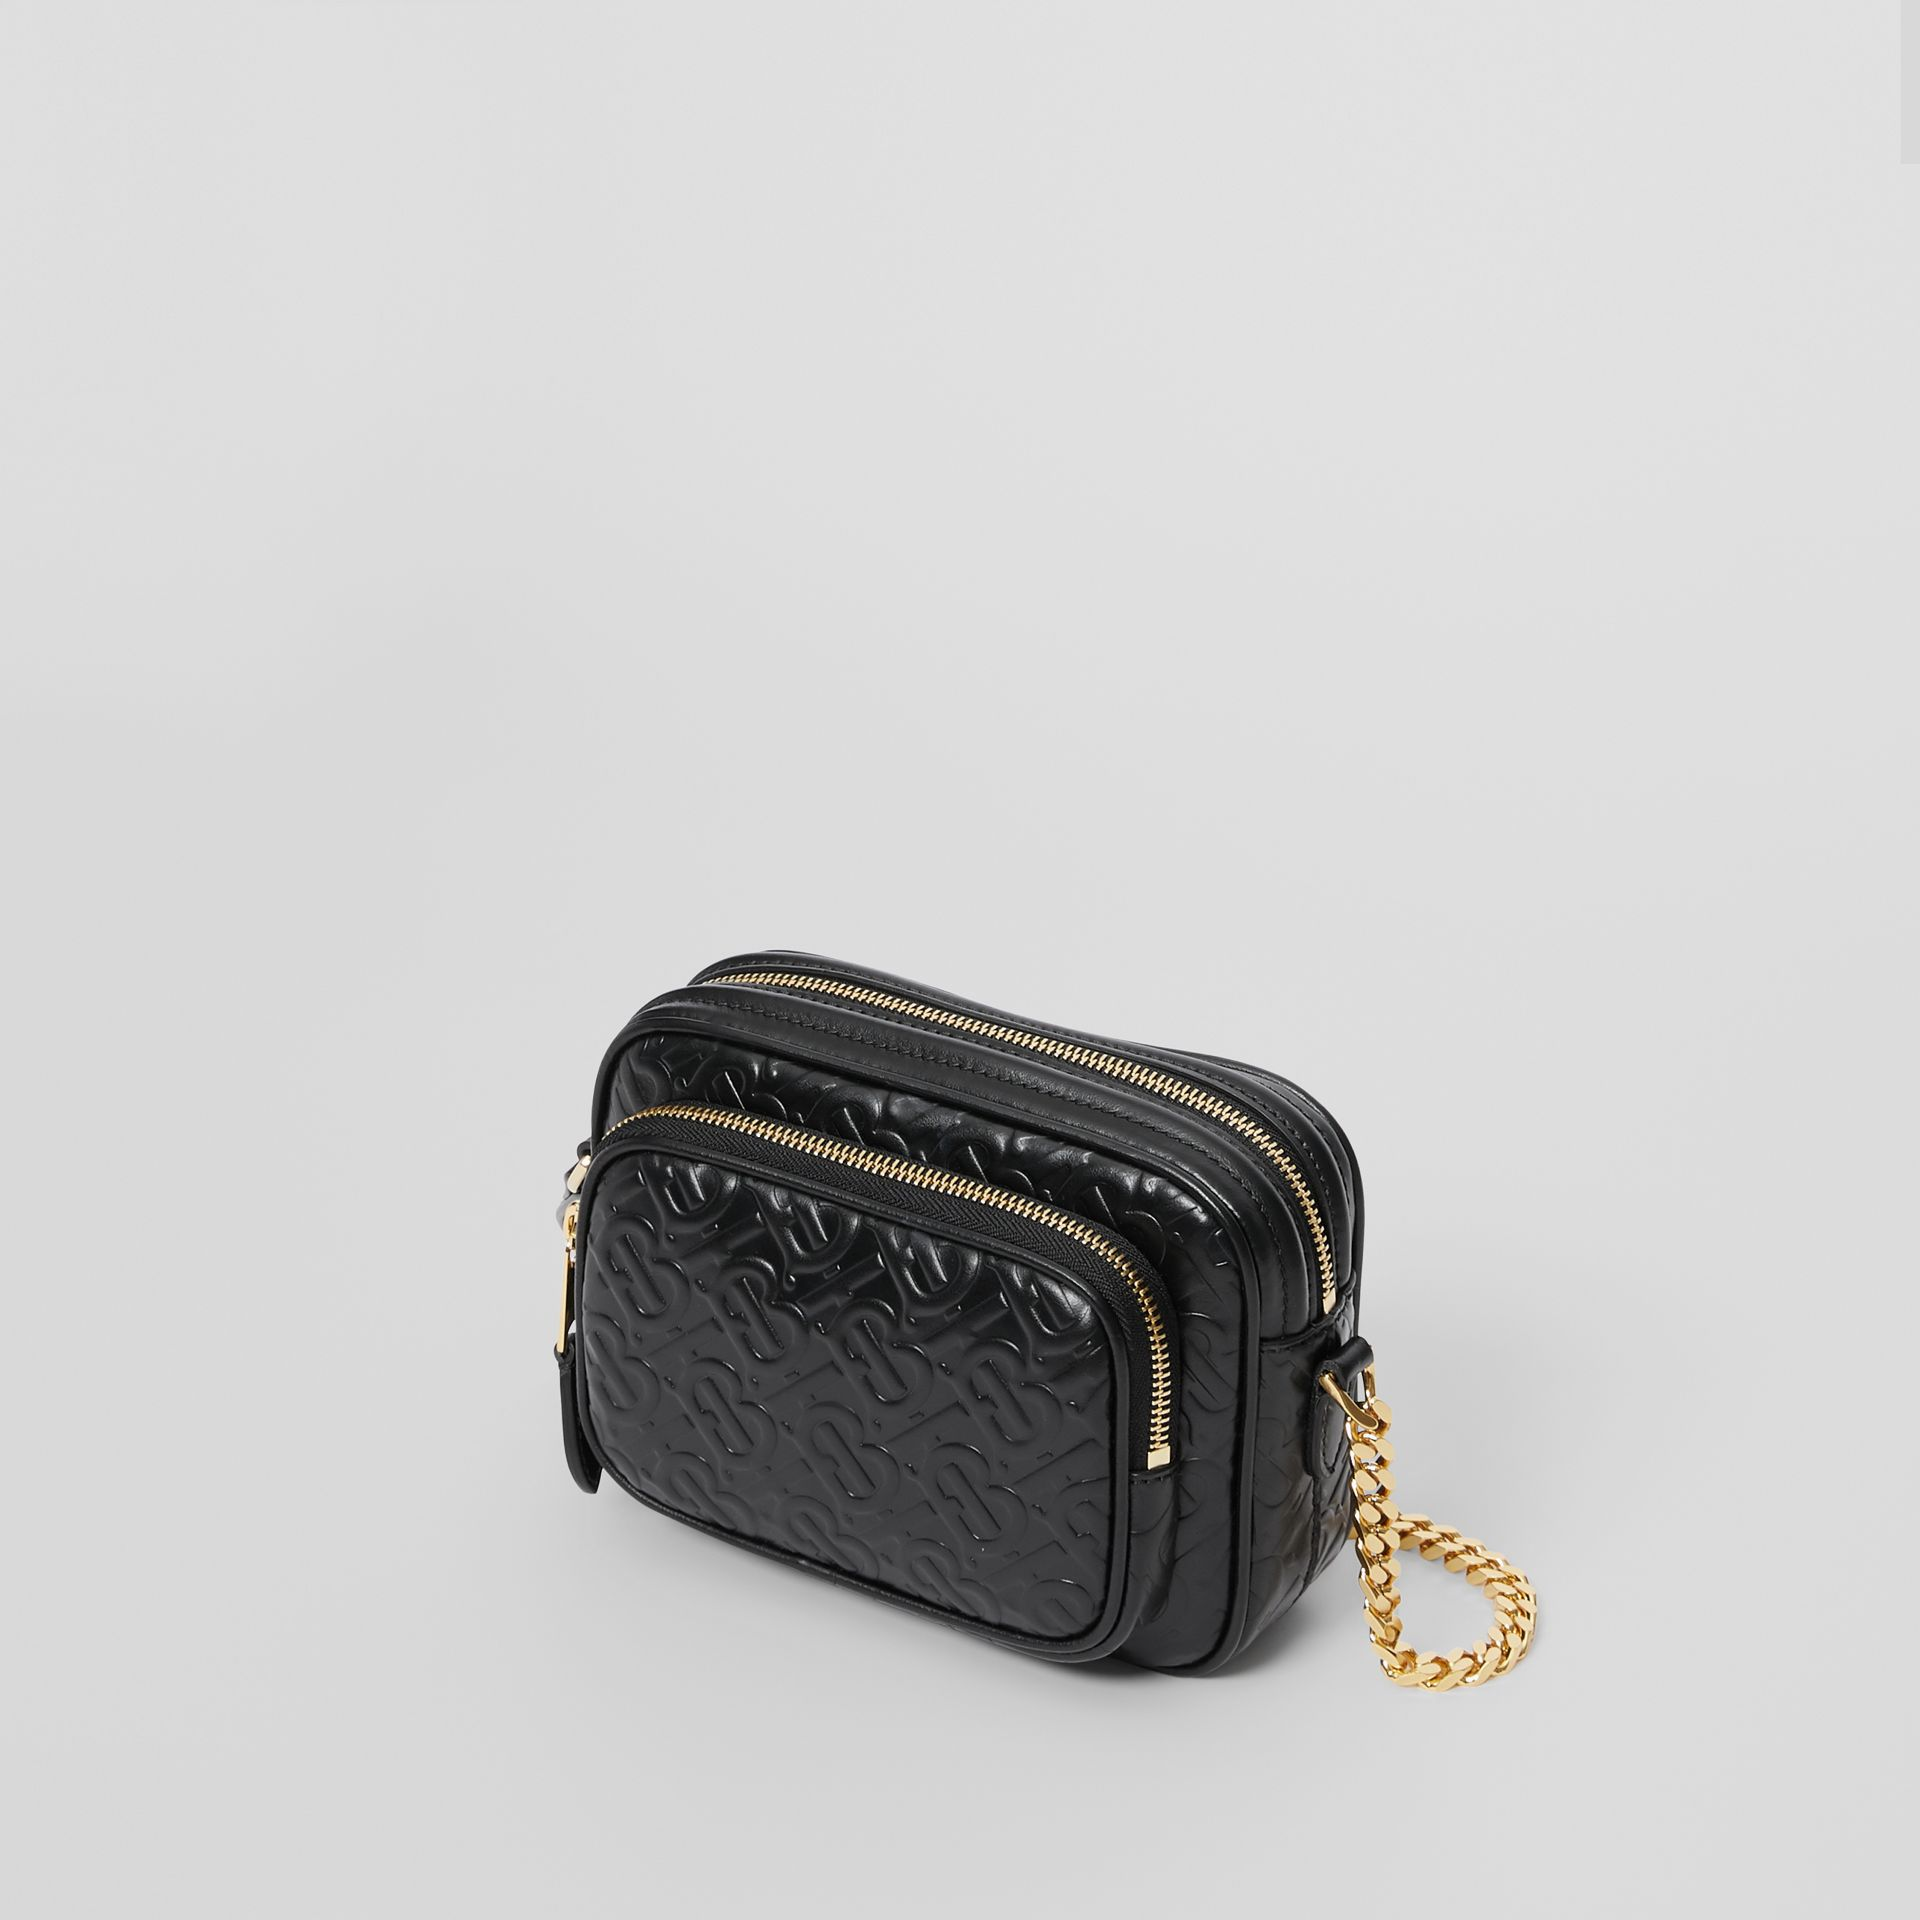 Monogram Leather Camera Bag in Black - Women | Burberry - gallery image 2